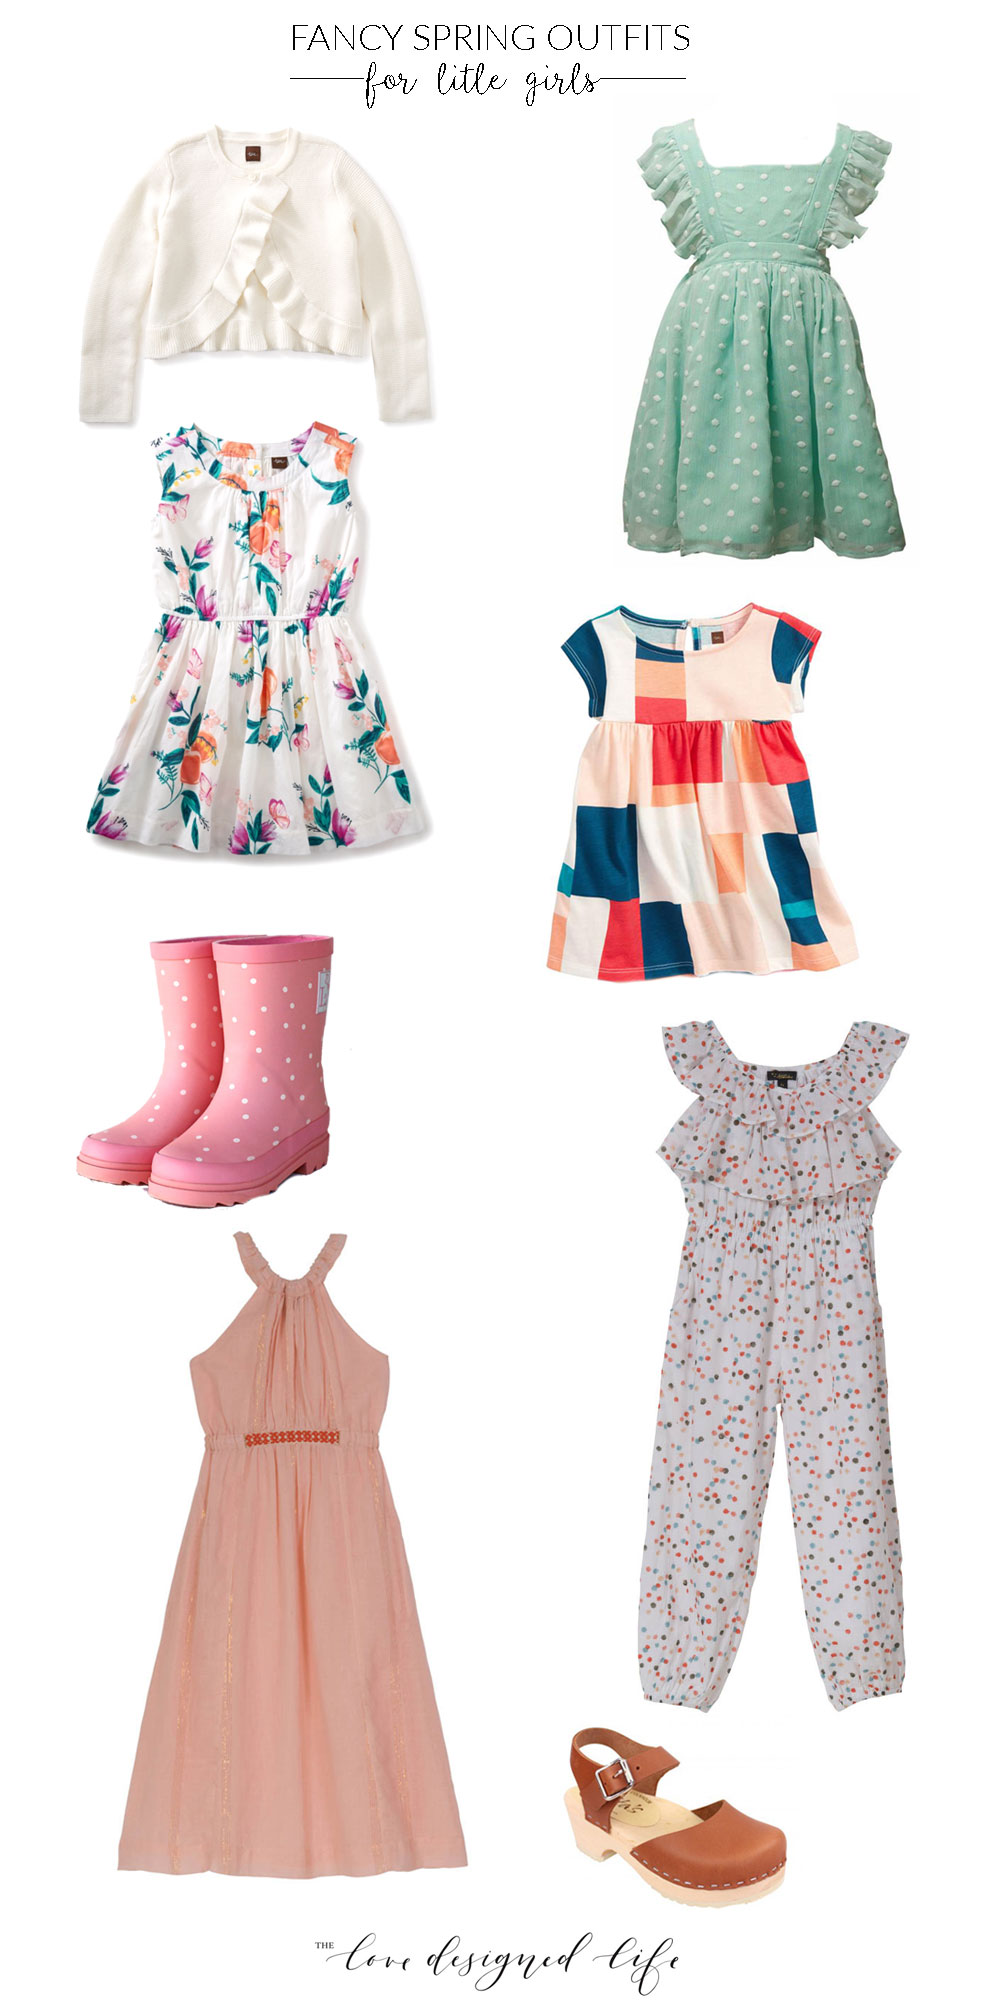 a roundup of this year's best fancy spring outfits for little girls | thelovedesignedlife.com #springdresses #easterdresses #littlegirlsdresses